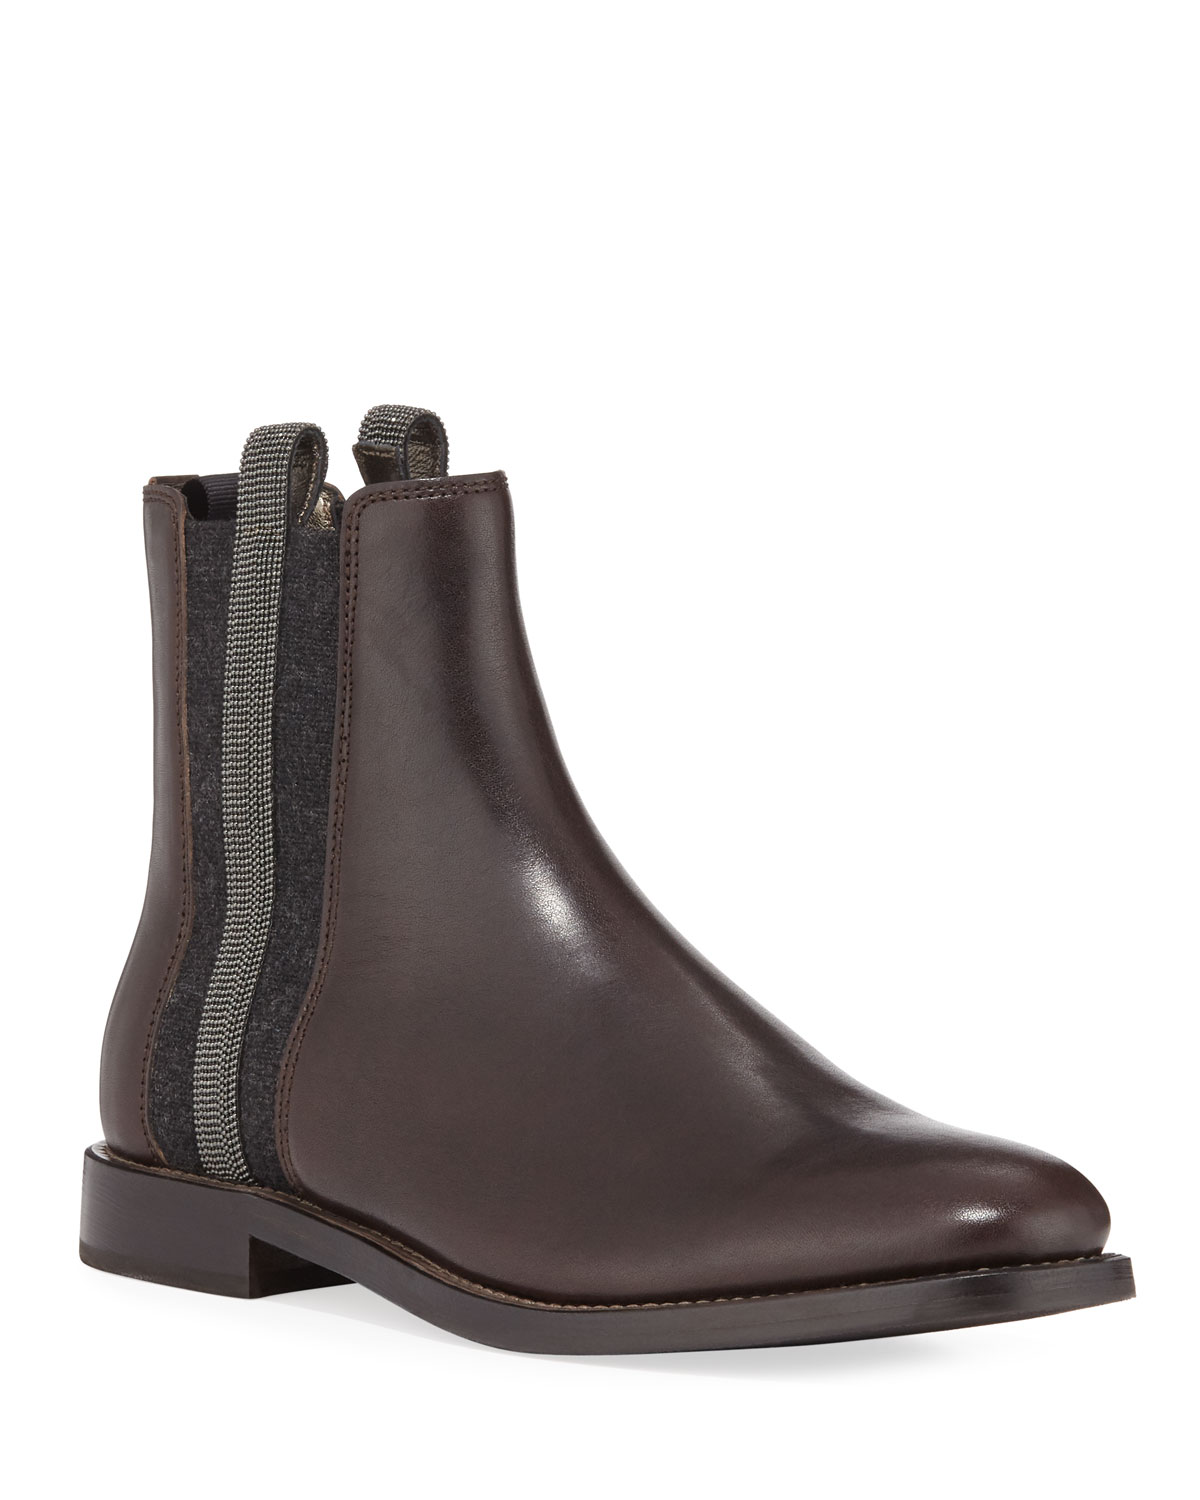 Brunello Cucinelli Boots CHELSEA LEATHER CASHMERE RIDING BOOTIES